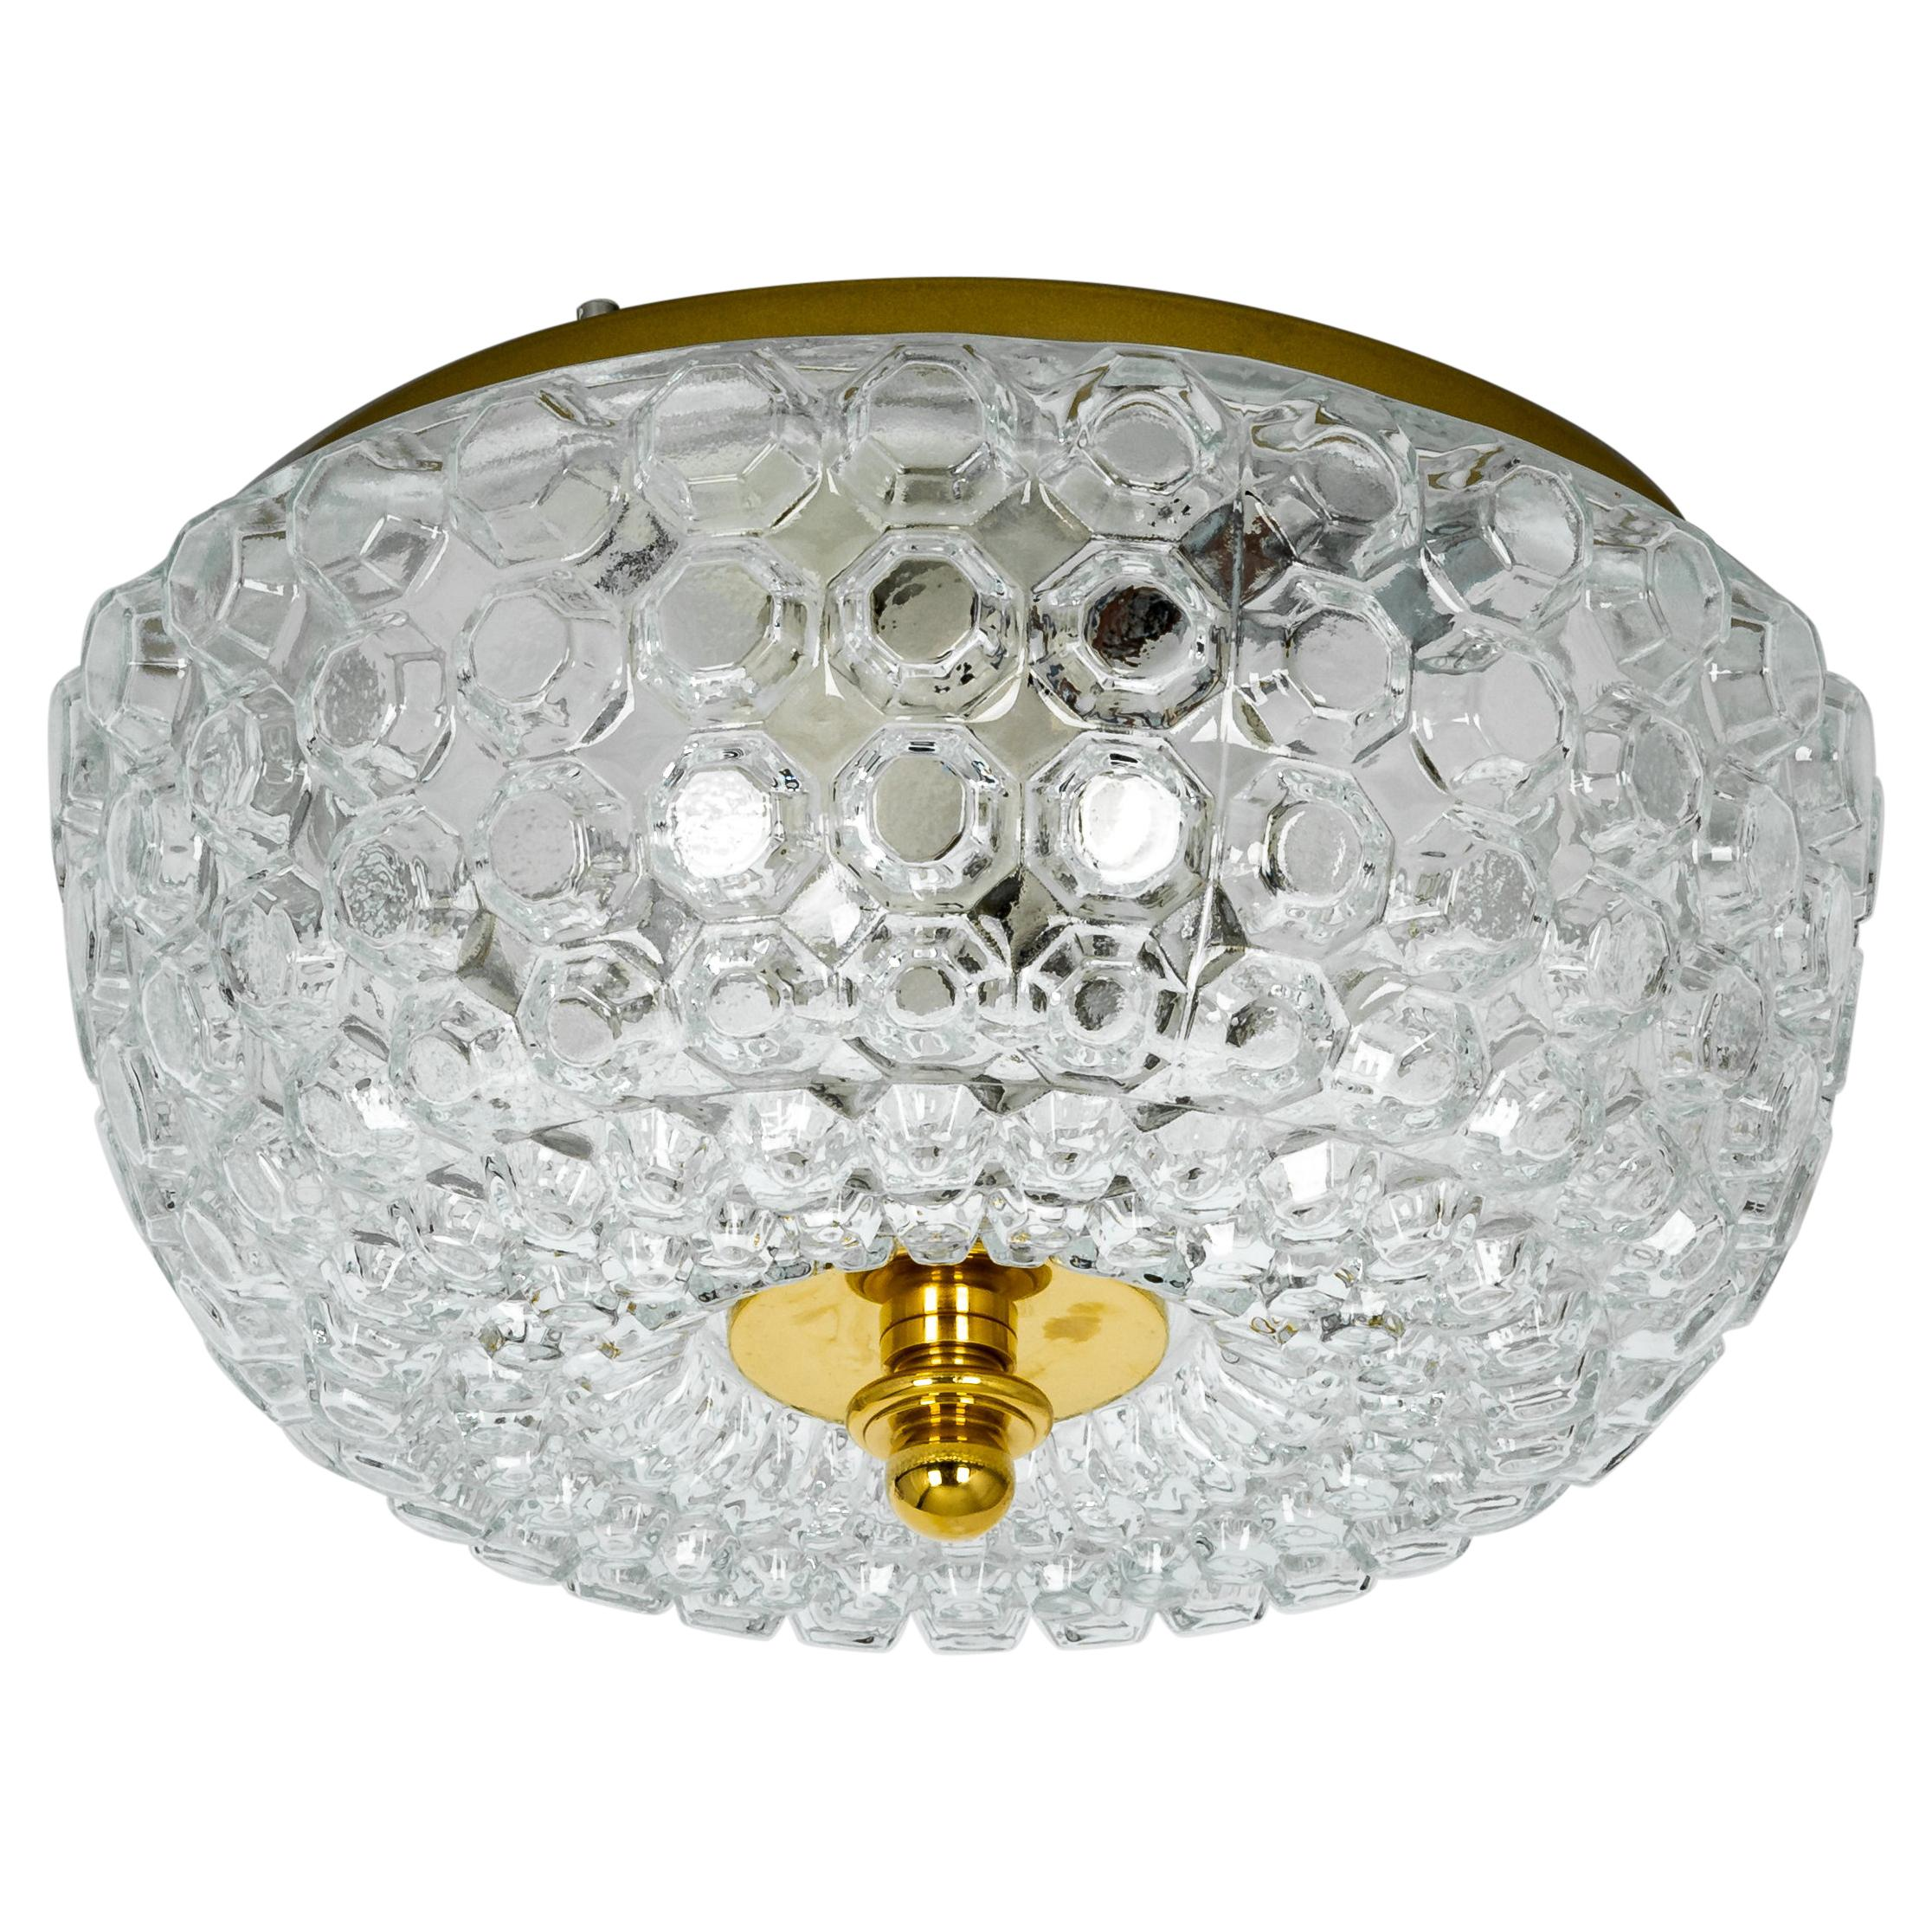 1 of 2 Midcentury Limburg Ceiling or Wall Light, Germany, 1970s